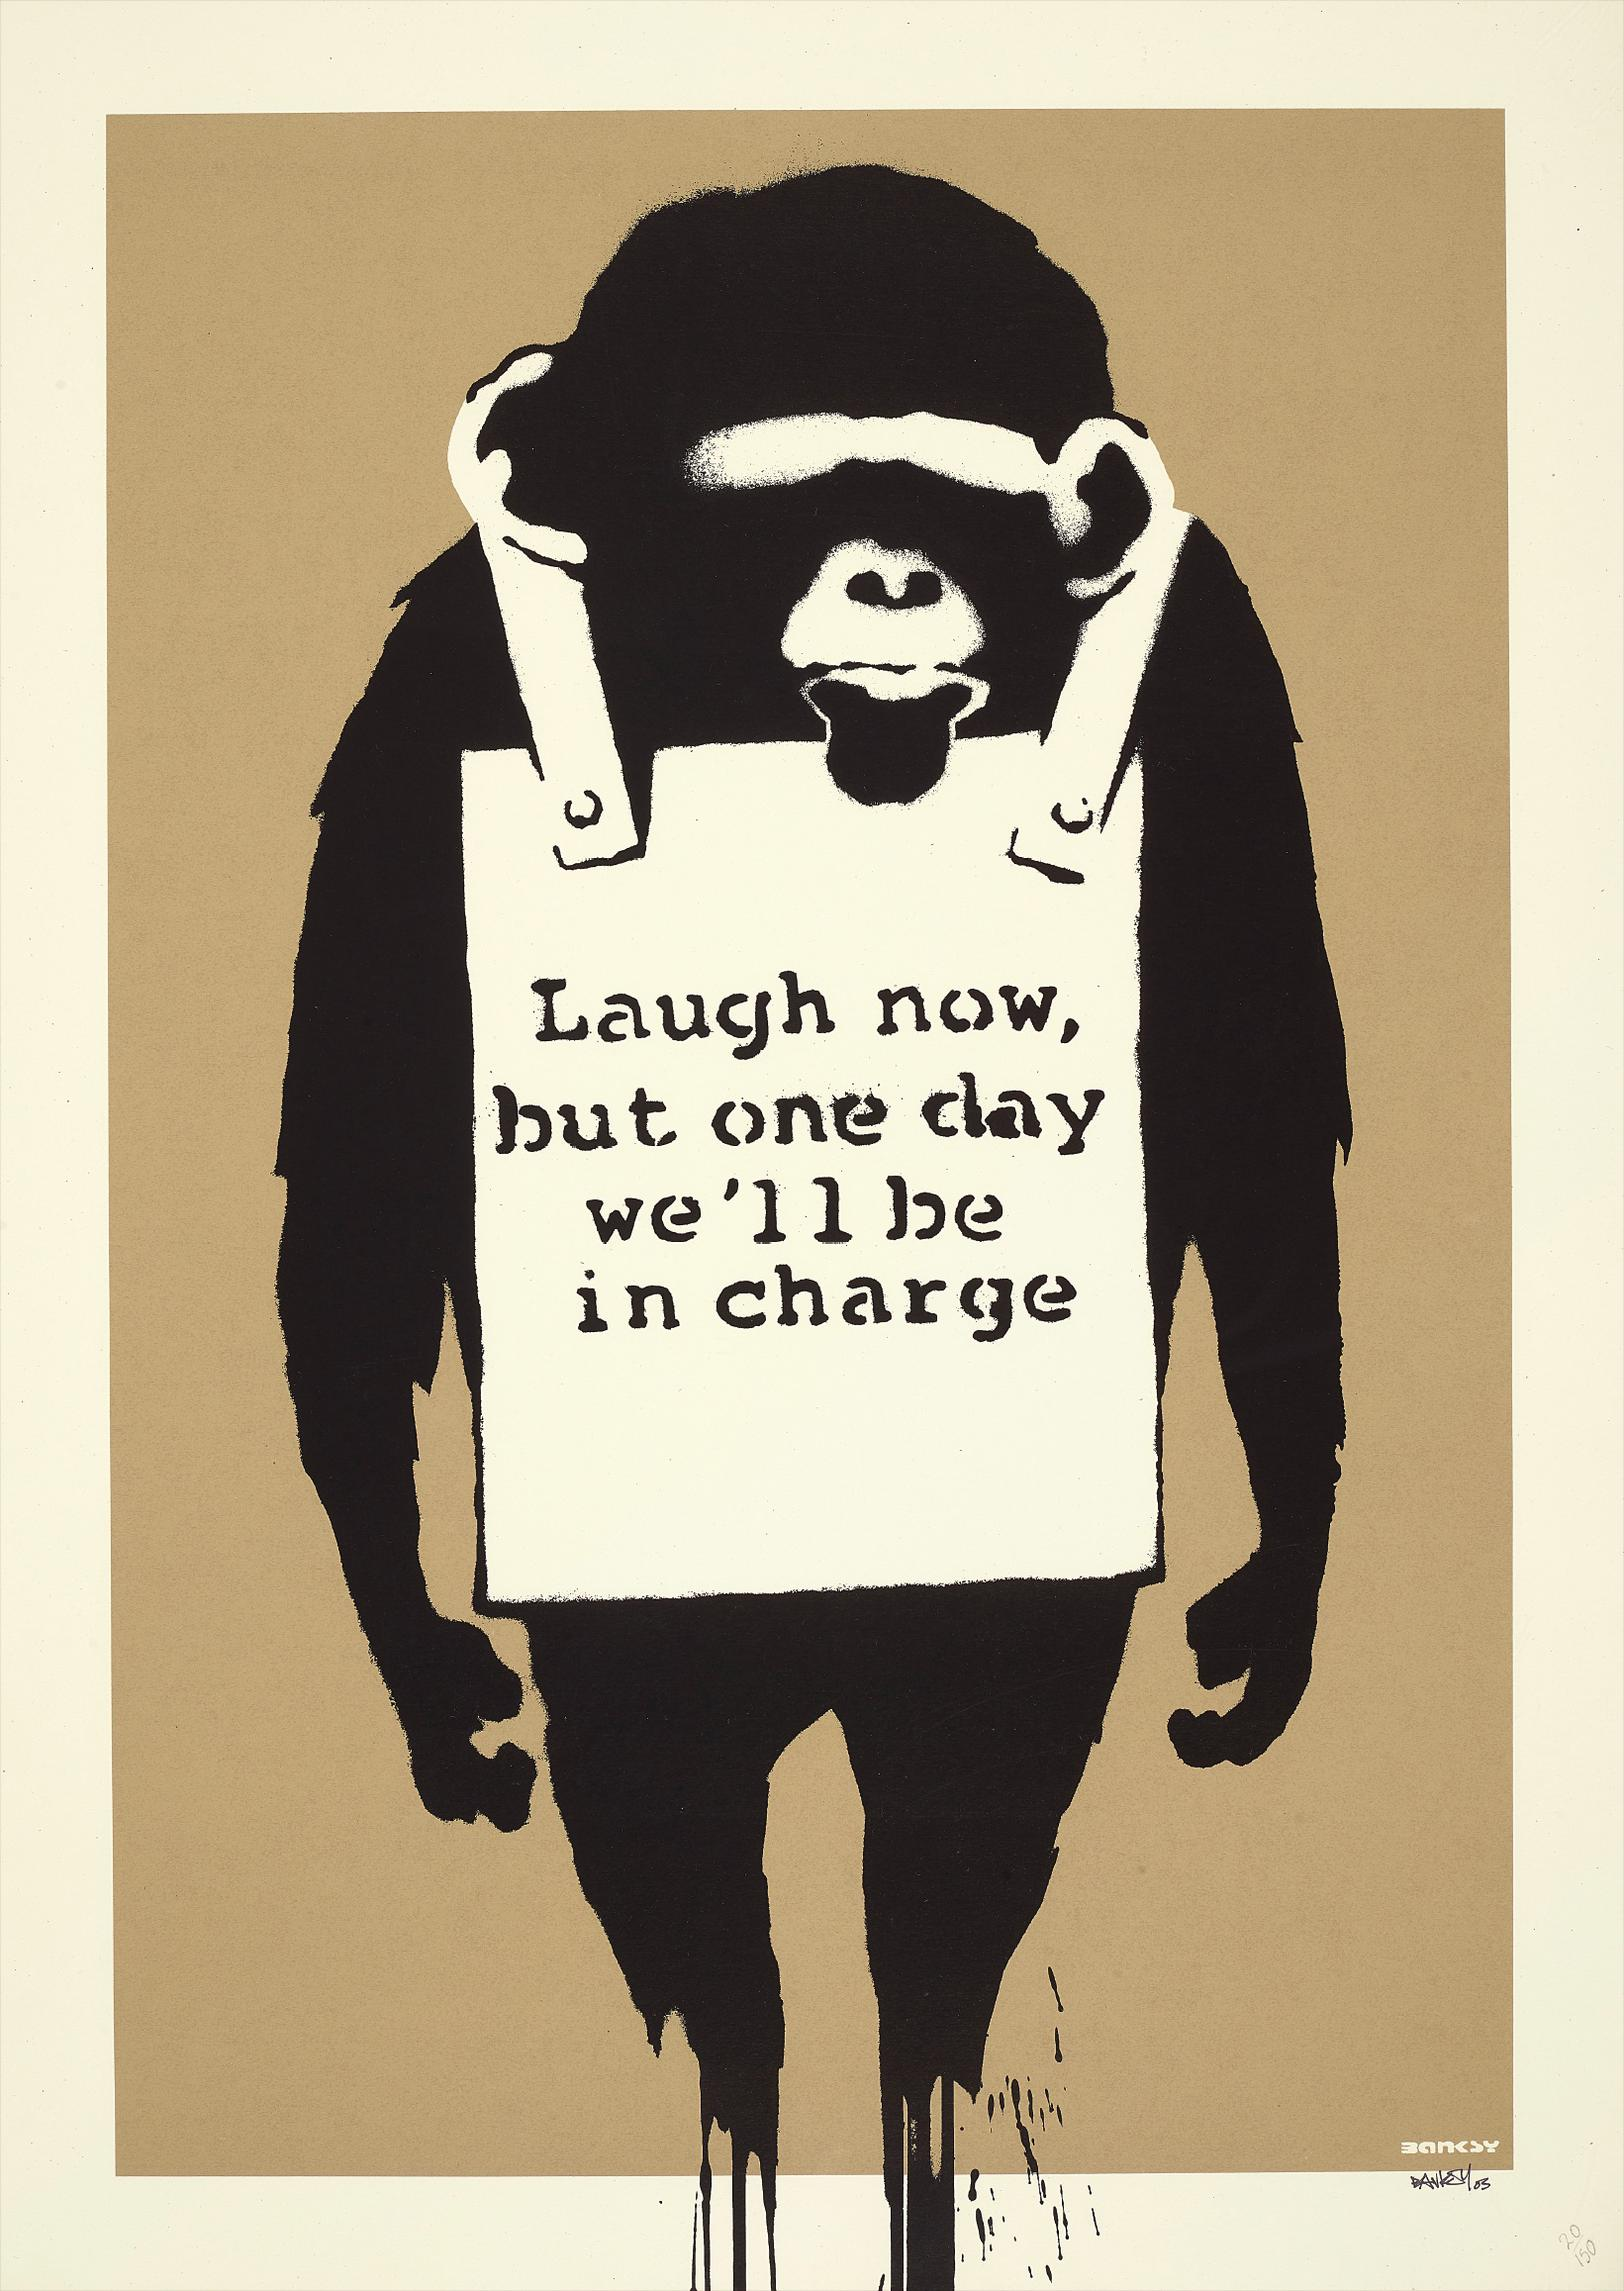 Banksy-Laugh Now-2005